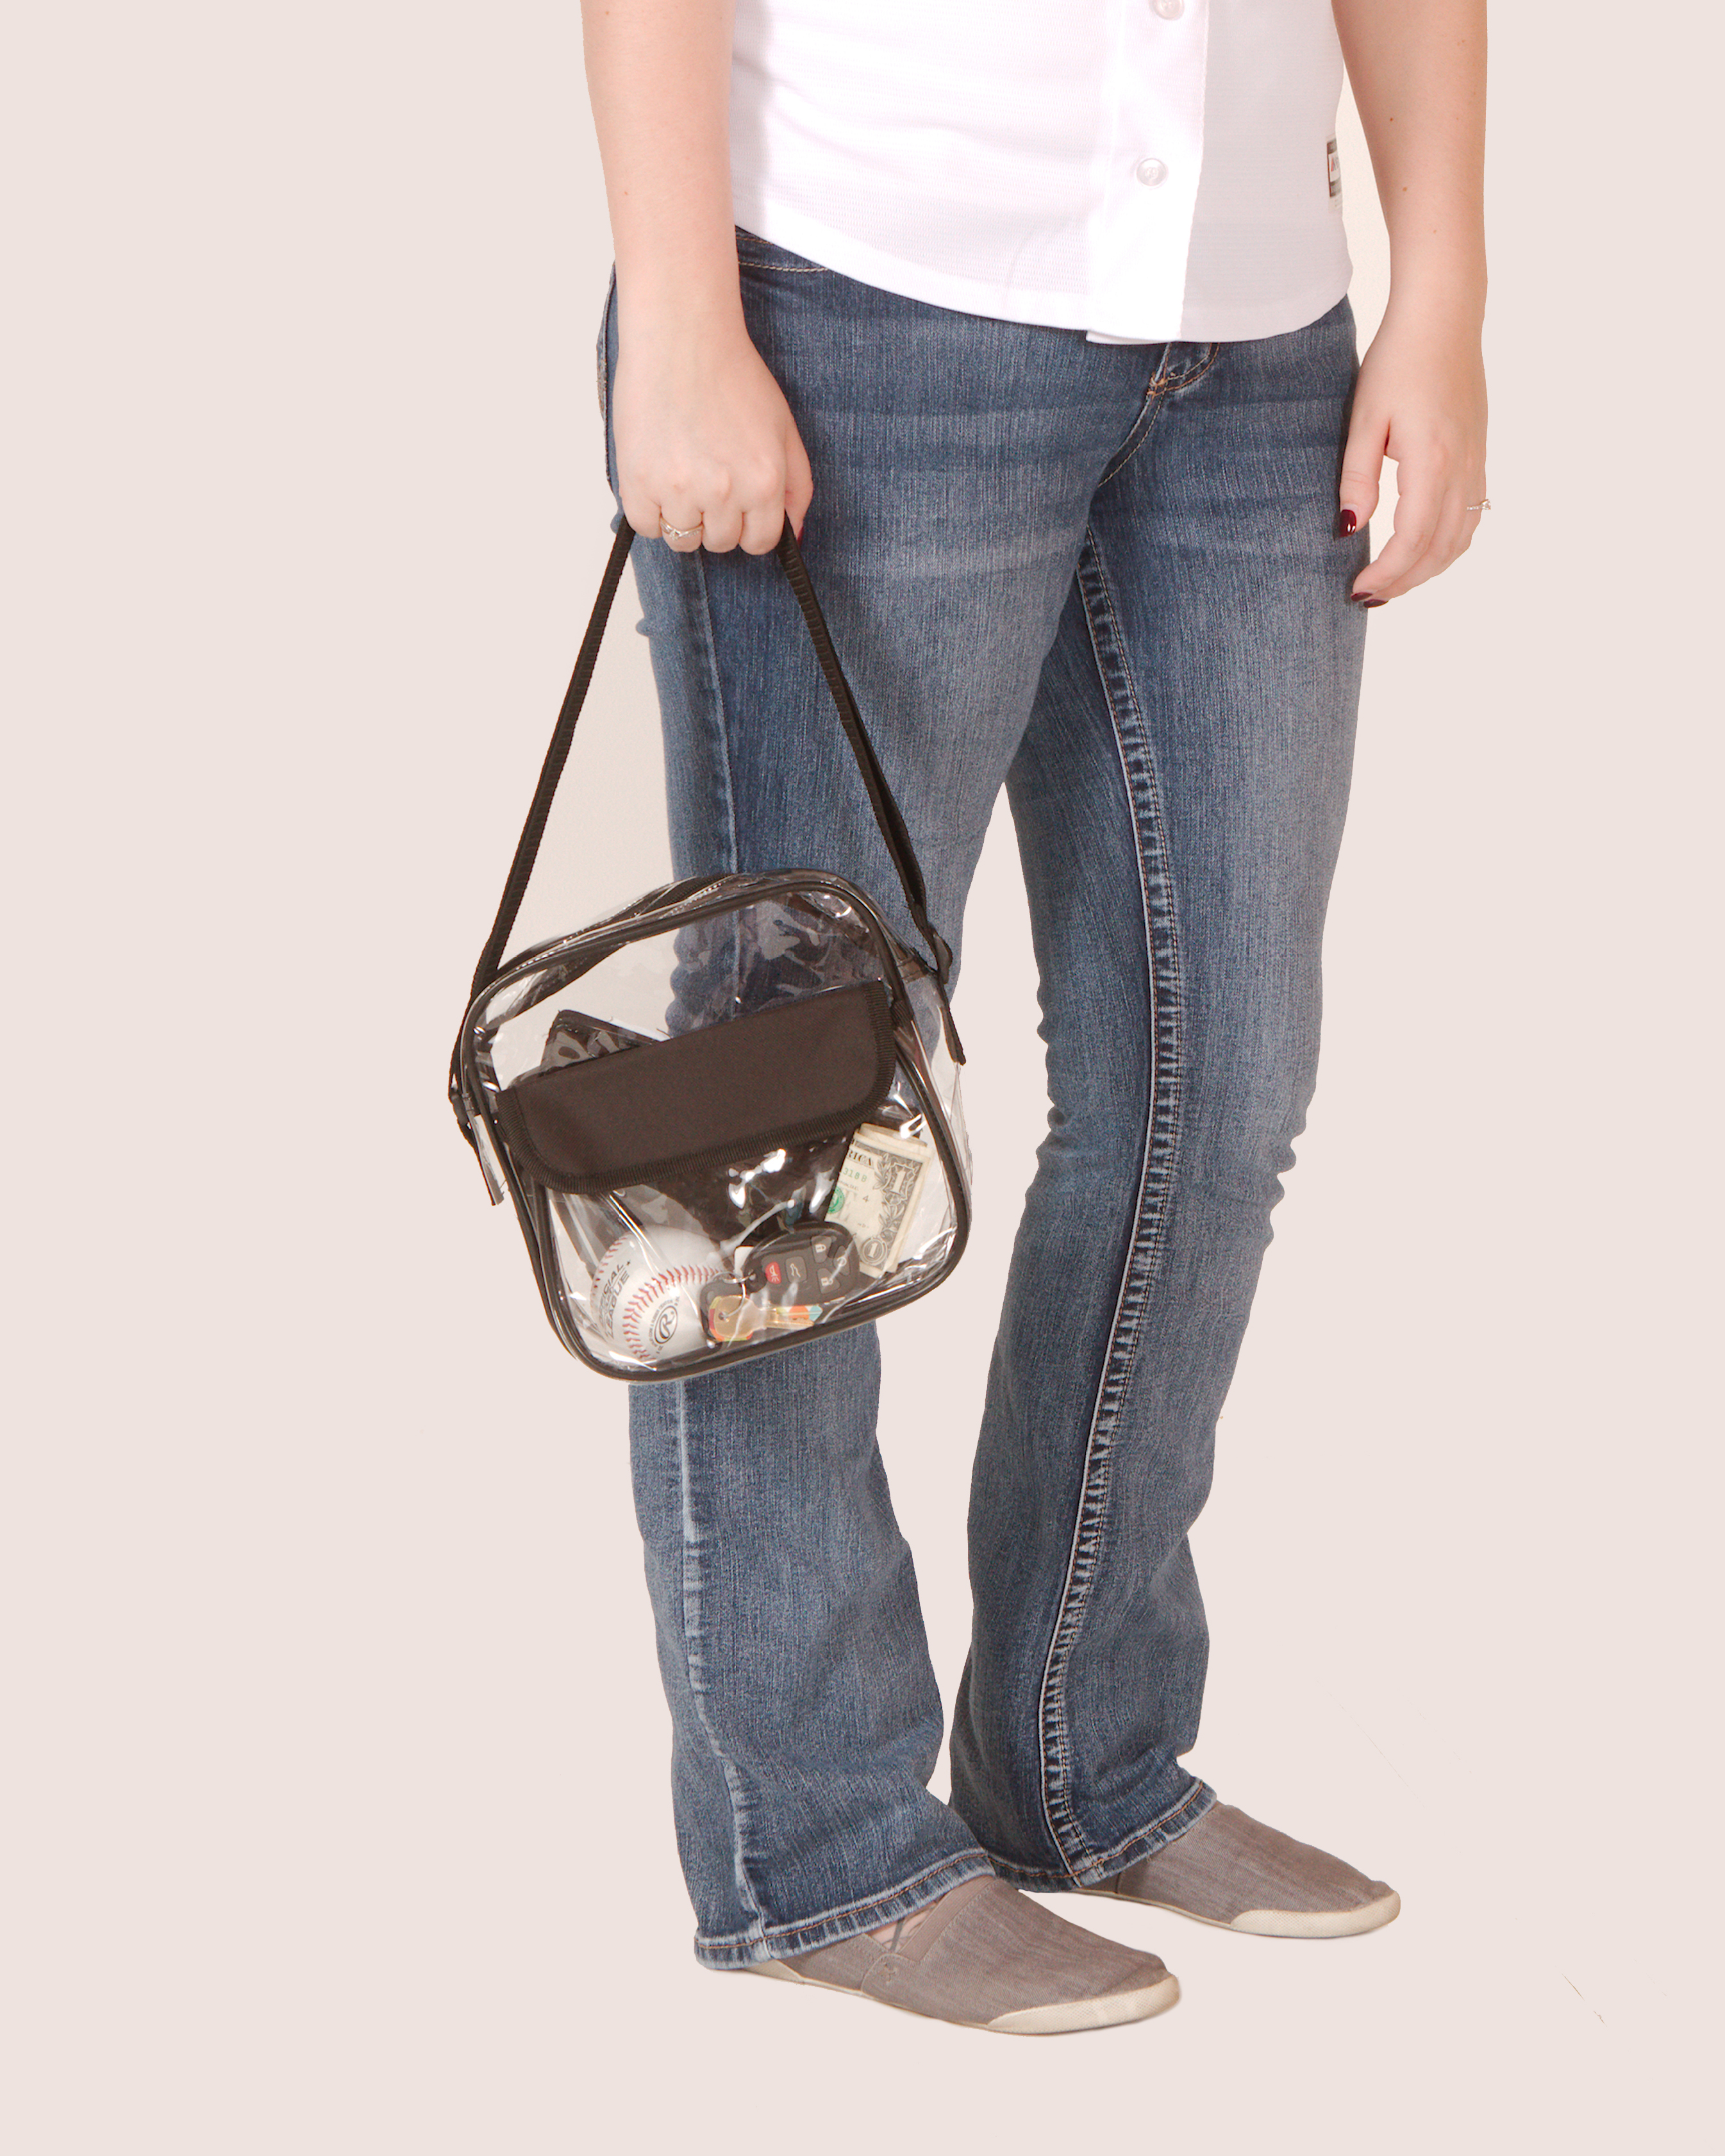 Clear-Purse-NFL-Stadium-Approved-Bag-with-Zipper-and-Shoulder-Strap thumbnail 32